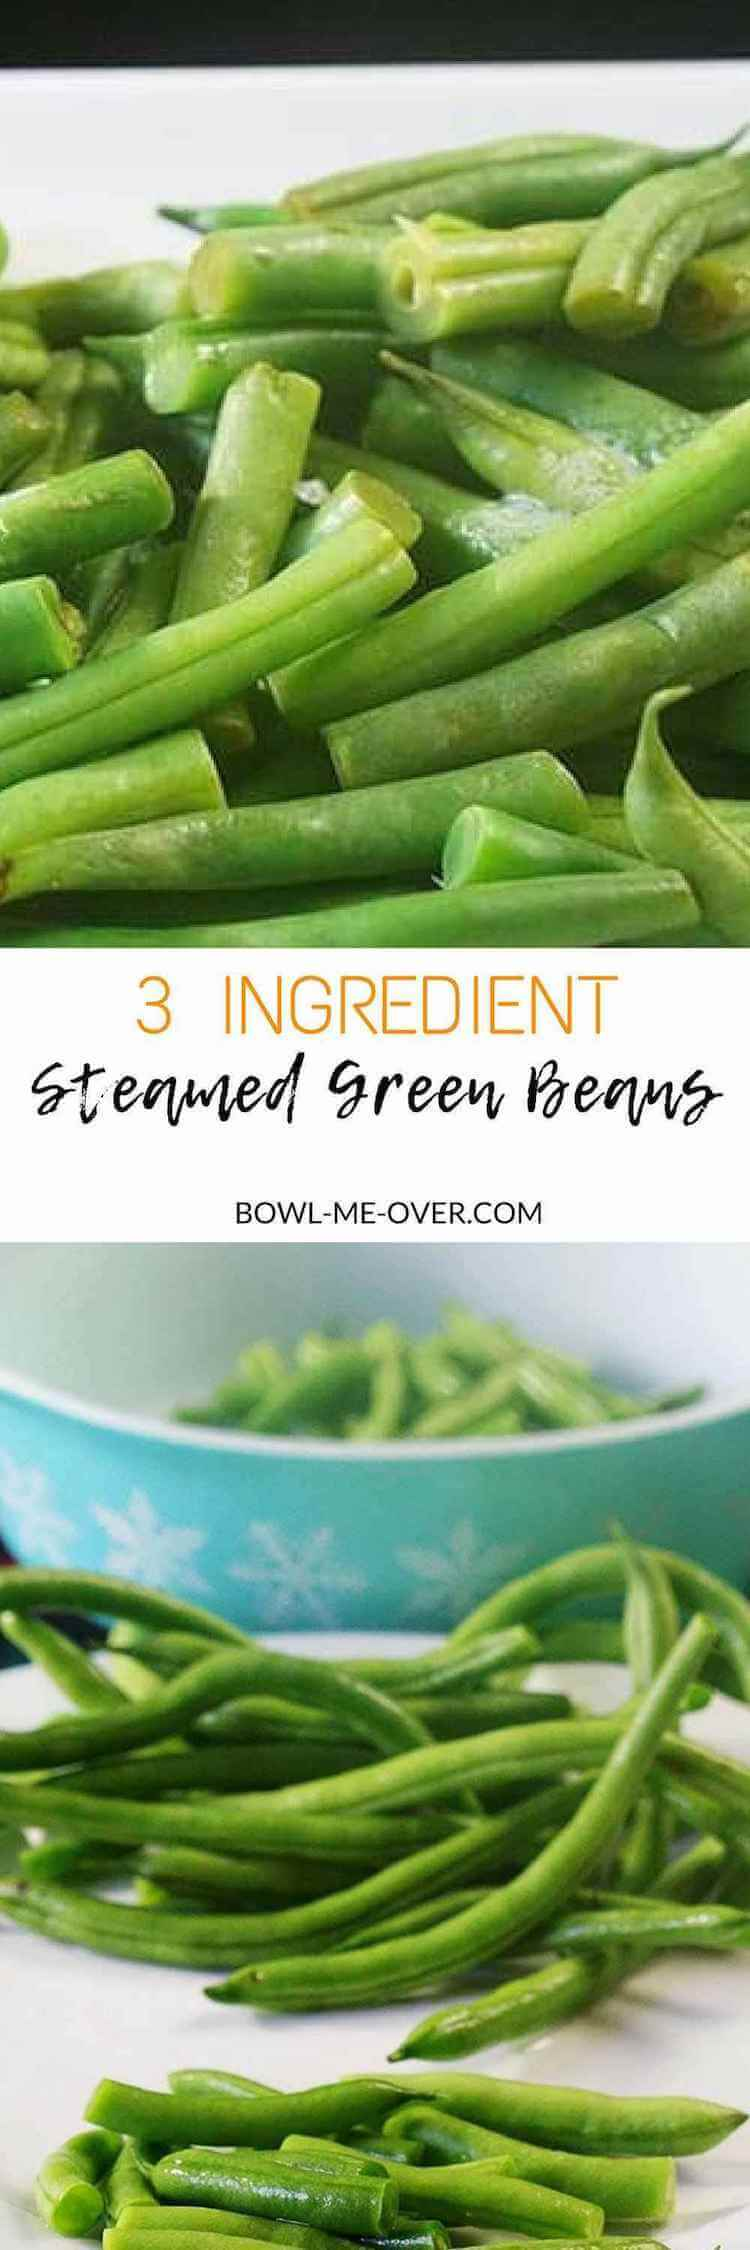 Steamed Green Beans are a lightened up, fresh, healthy and delicious side dish!